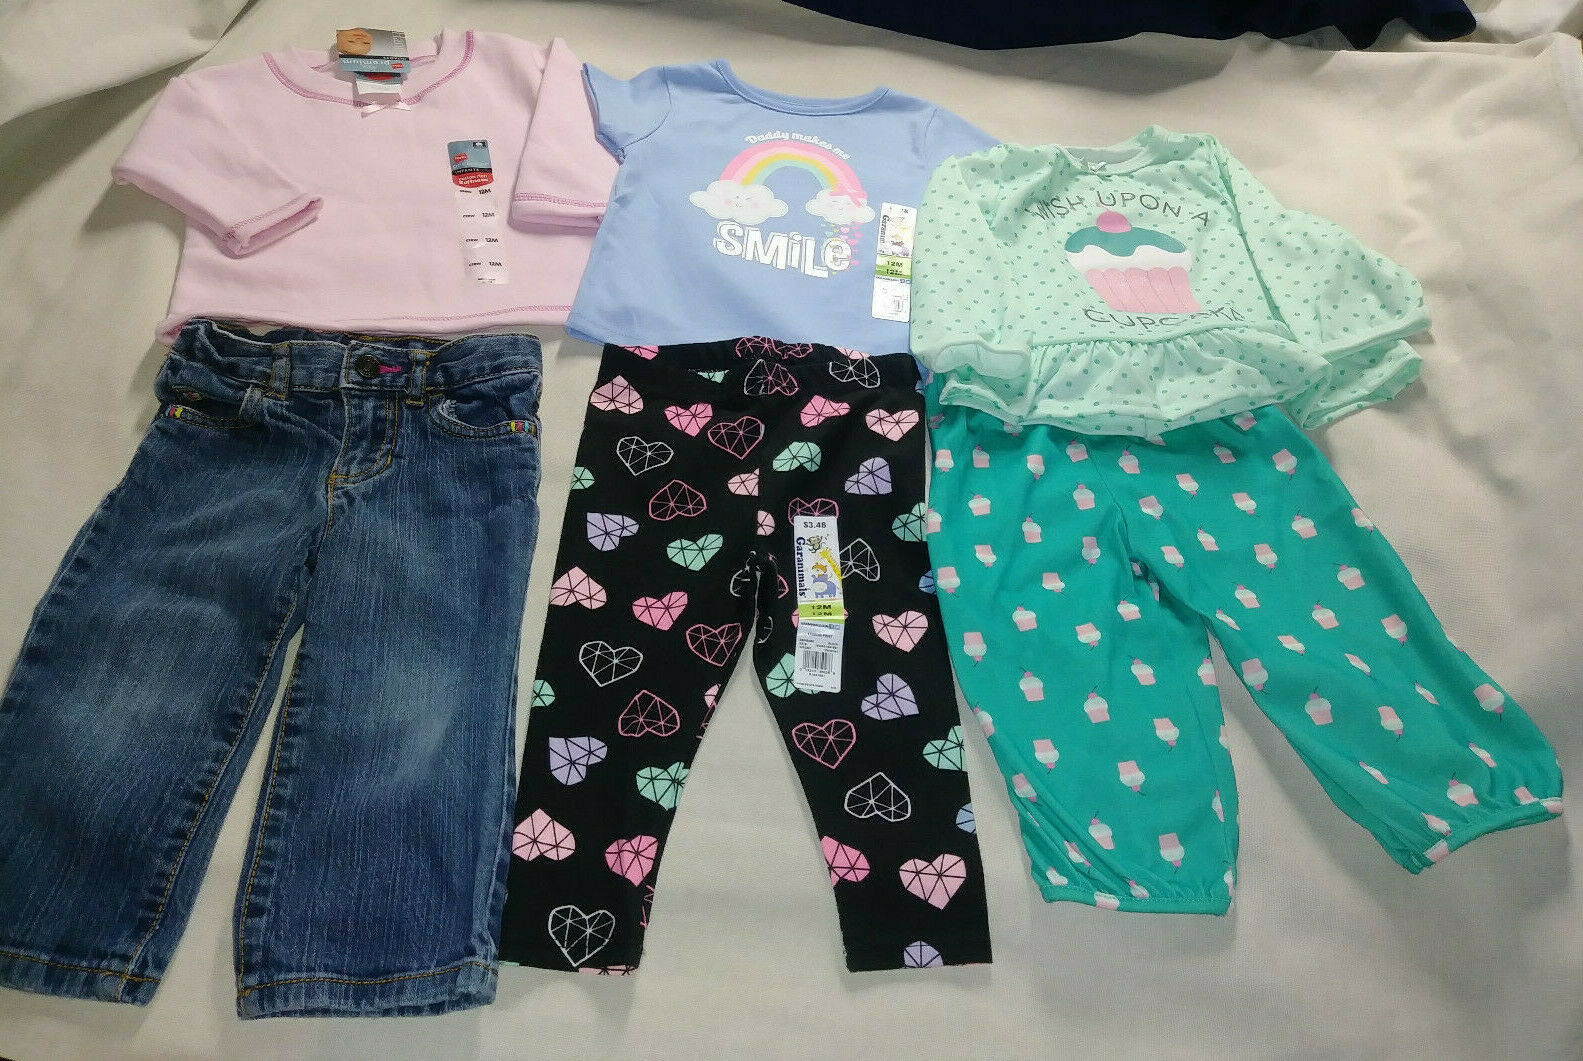 3 outfits 6 pieces girls 12 month Set Jeans tops Cupcake PJs